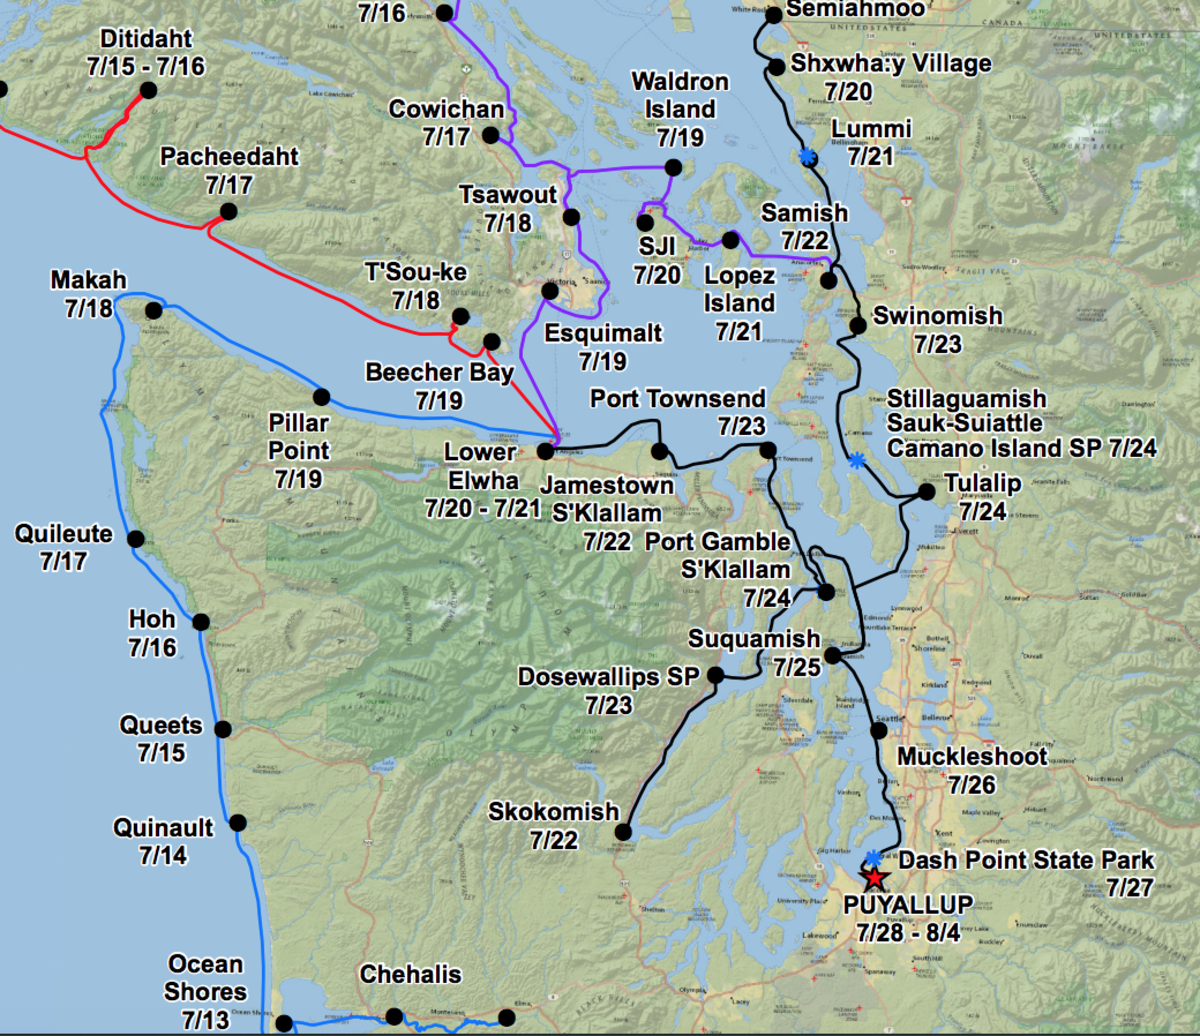 A map showing various tribal canoe journeys to Puyallup.